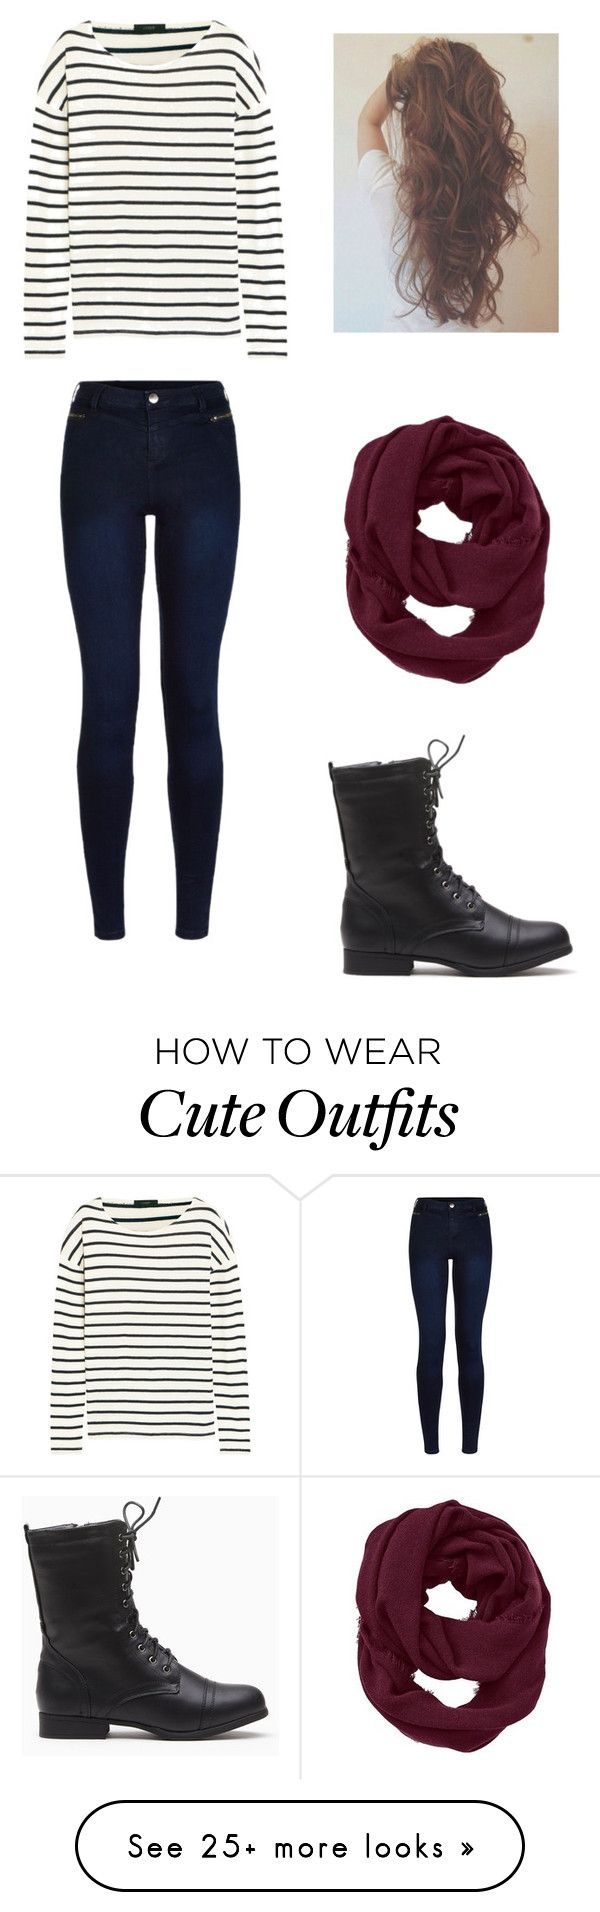 """cute fall outfit"" by mariah-rose1 on Polyvore featuring J.Crew, Athleta and Urban Bliss"